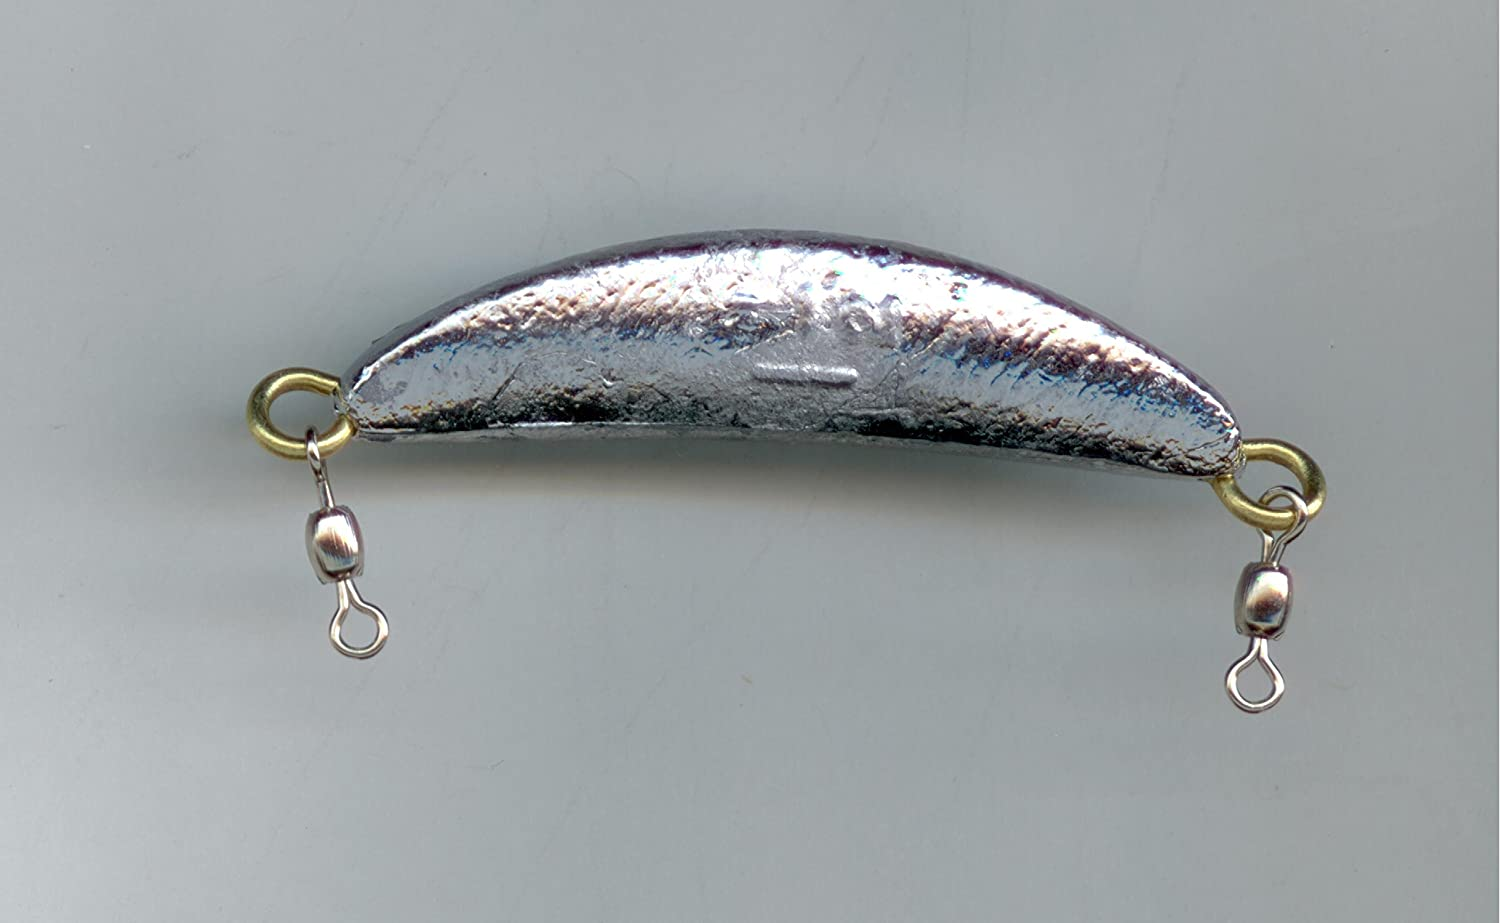 25 Pyramid Sinkers 2 oz fishing weights FAST FREE SHIPPING